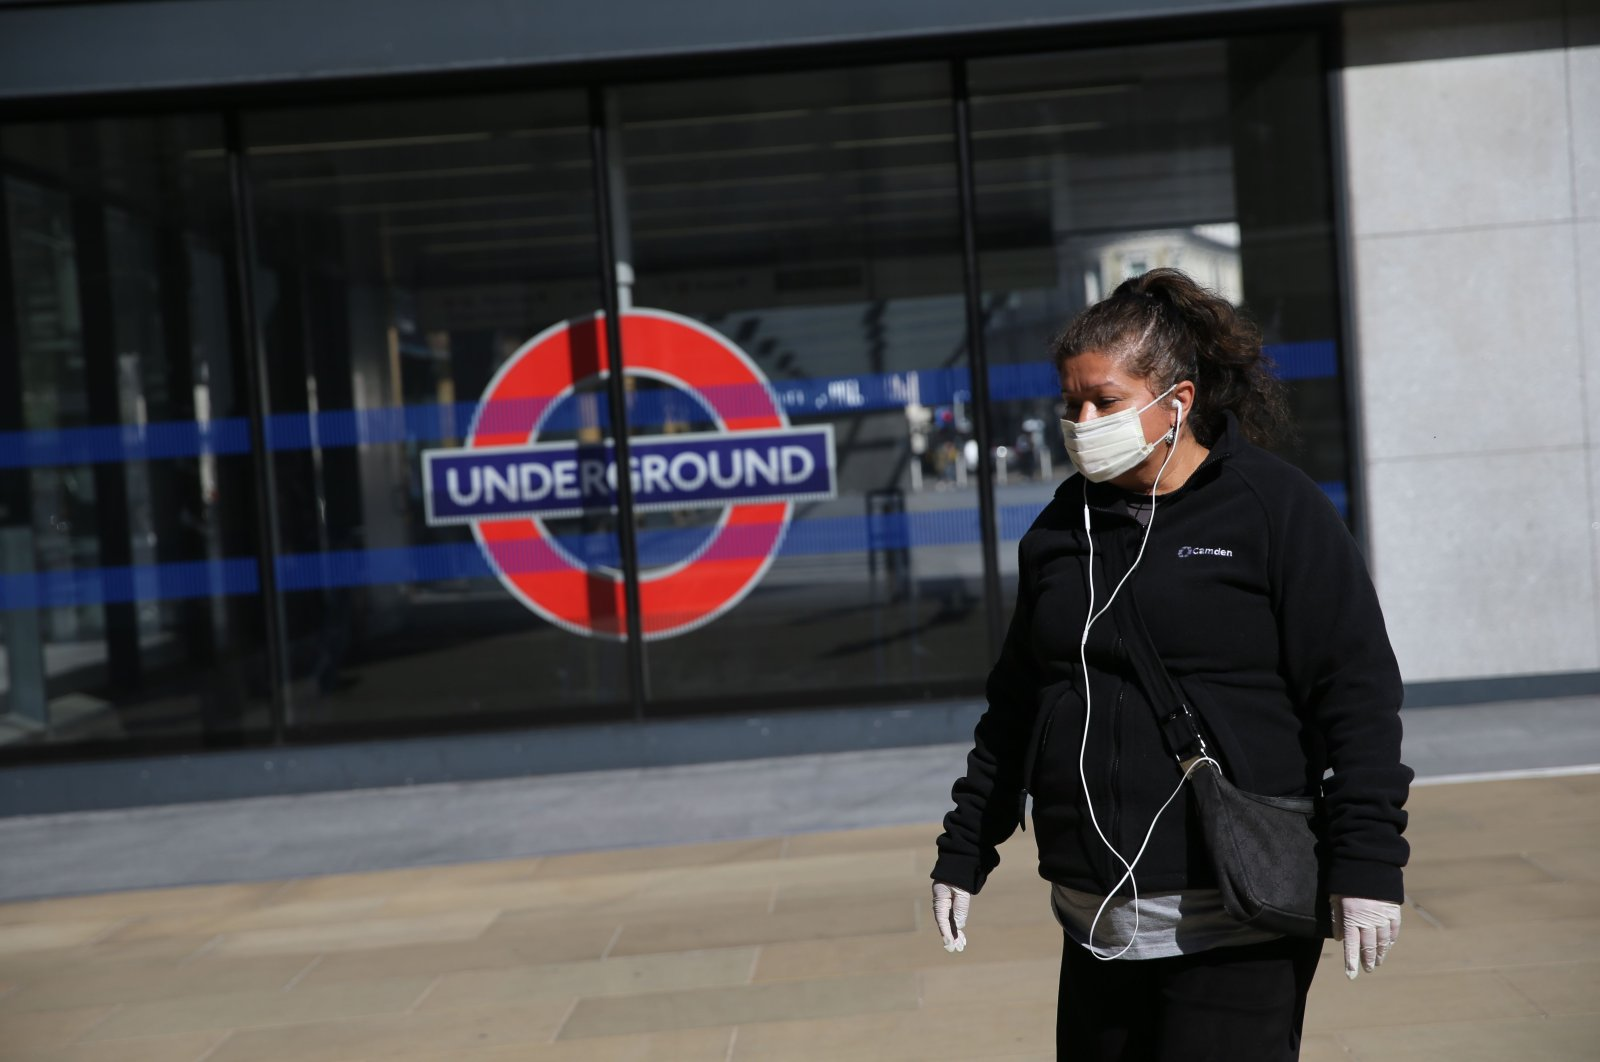 A woman wearing a mask as life continues under a nationwide lockdown imposed to slow the spread of the novel coronavirus, Kings Cross Station in London on May 6, 2020. (AFP Photo)